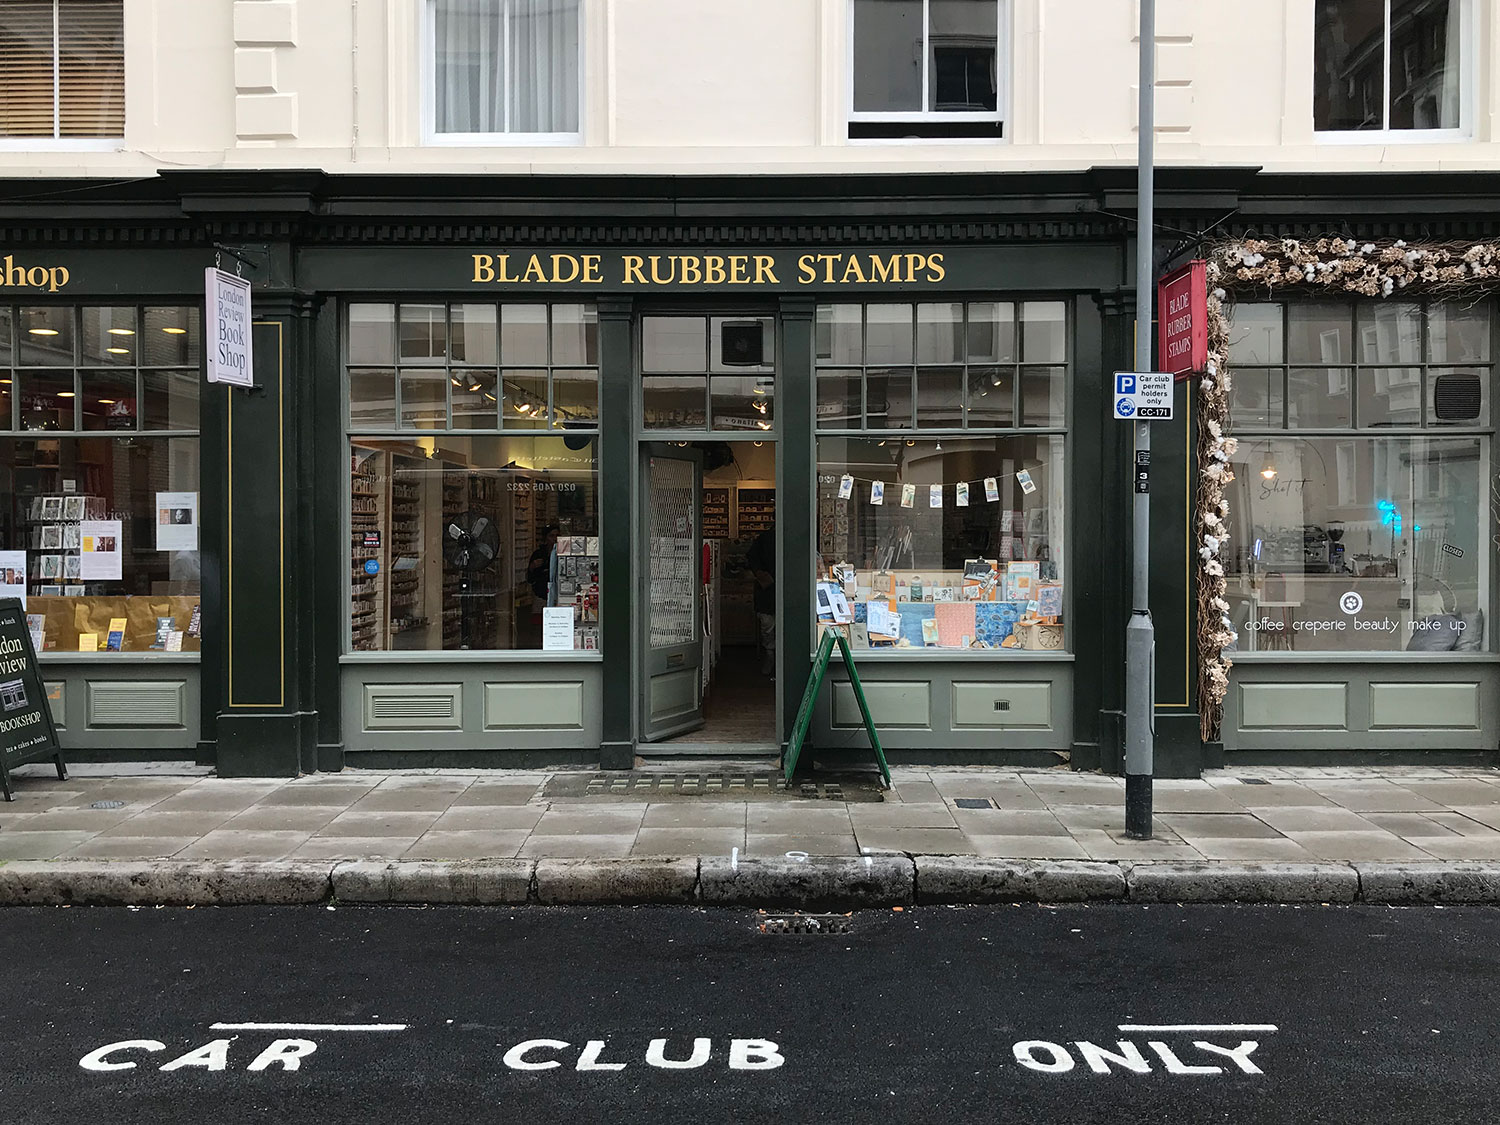 stationery shop bloomsbury - london - blade rubber stamps